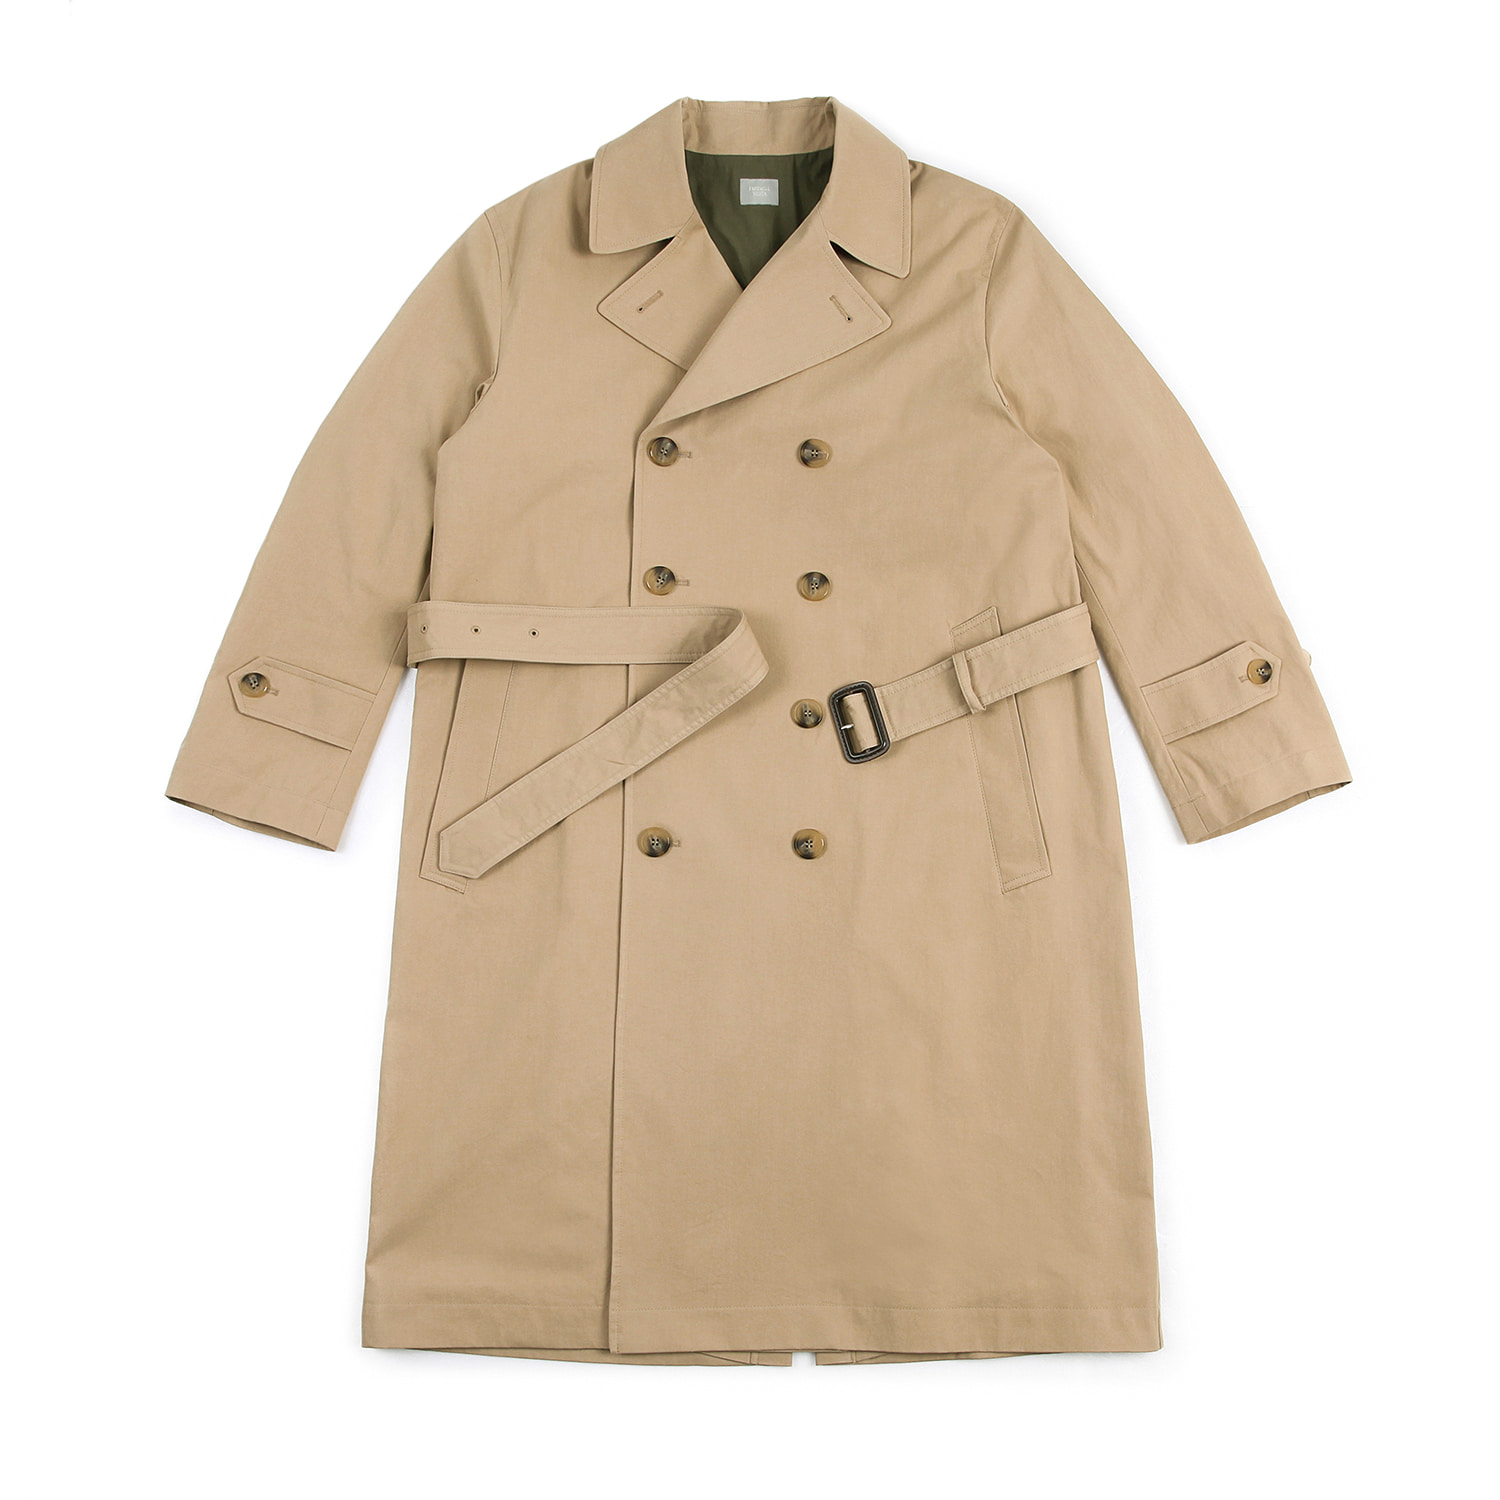 25%OFF_Farewell Youth Trench Coat (Beige)